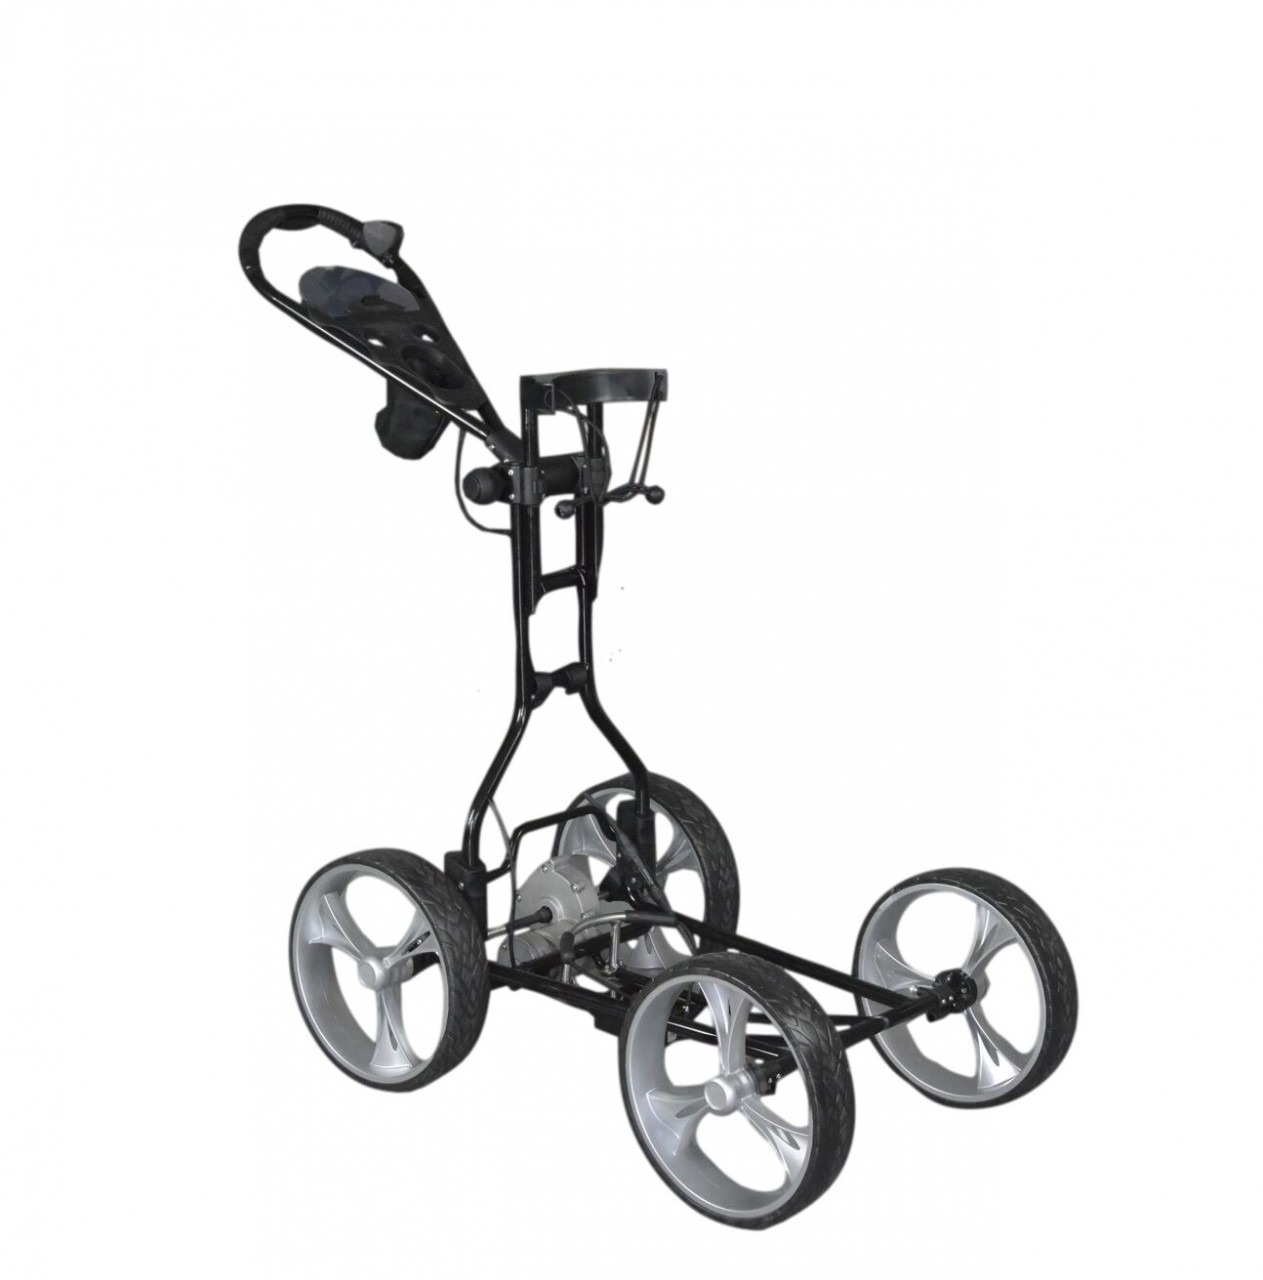 Upright Caddy Clever Caddy Electric Non Remote Golf Push